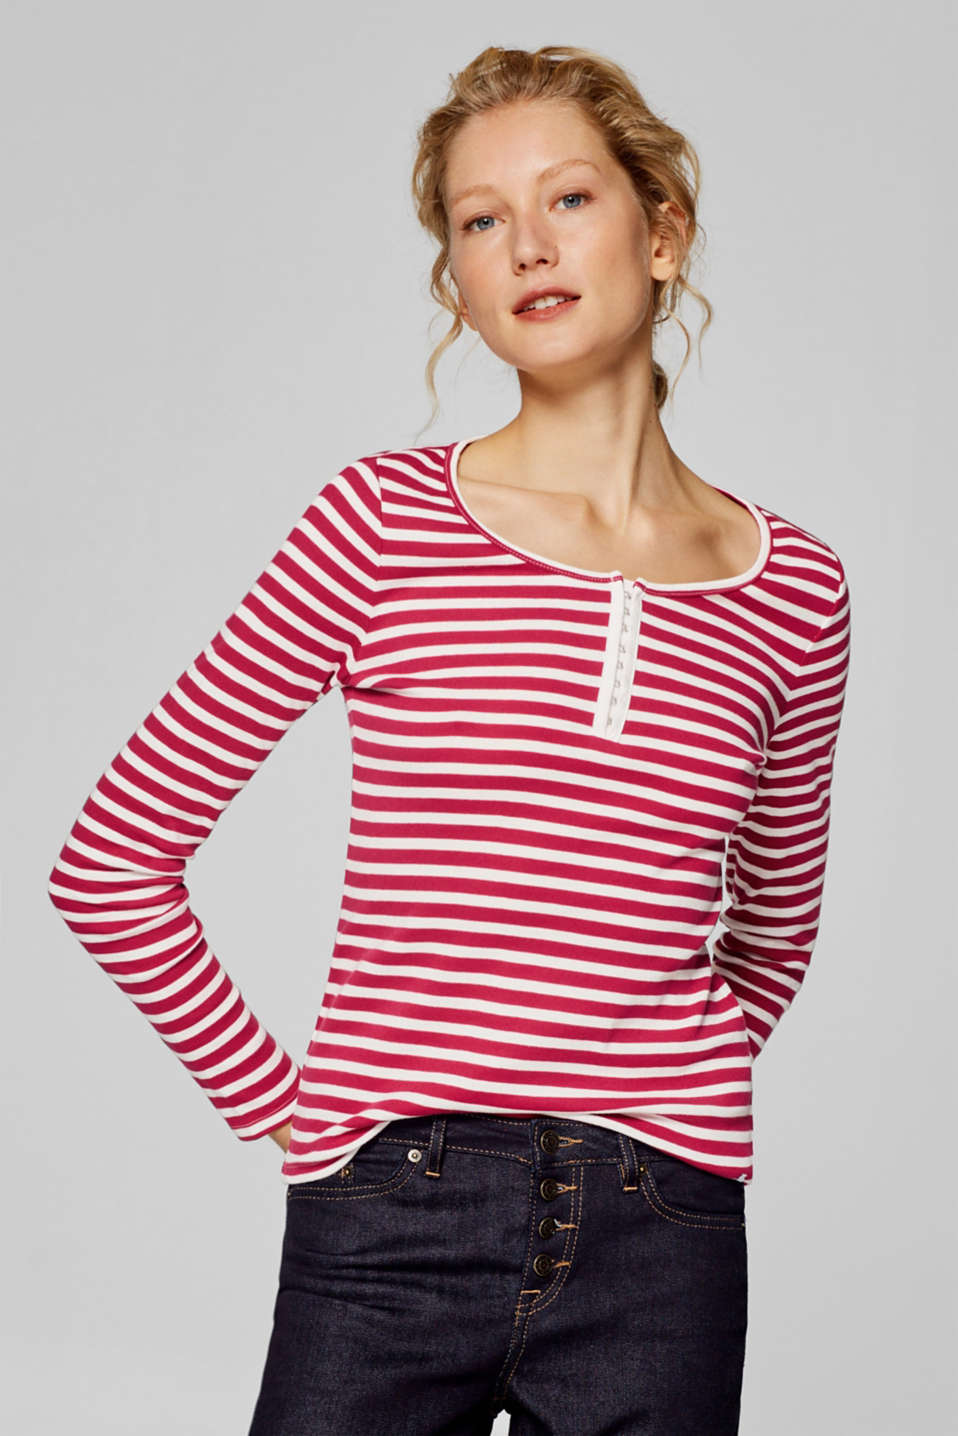 edc - Long sleeve top with a hook fastener, 100% cotton